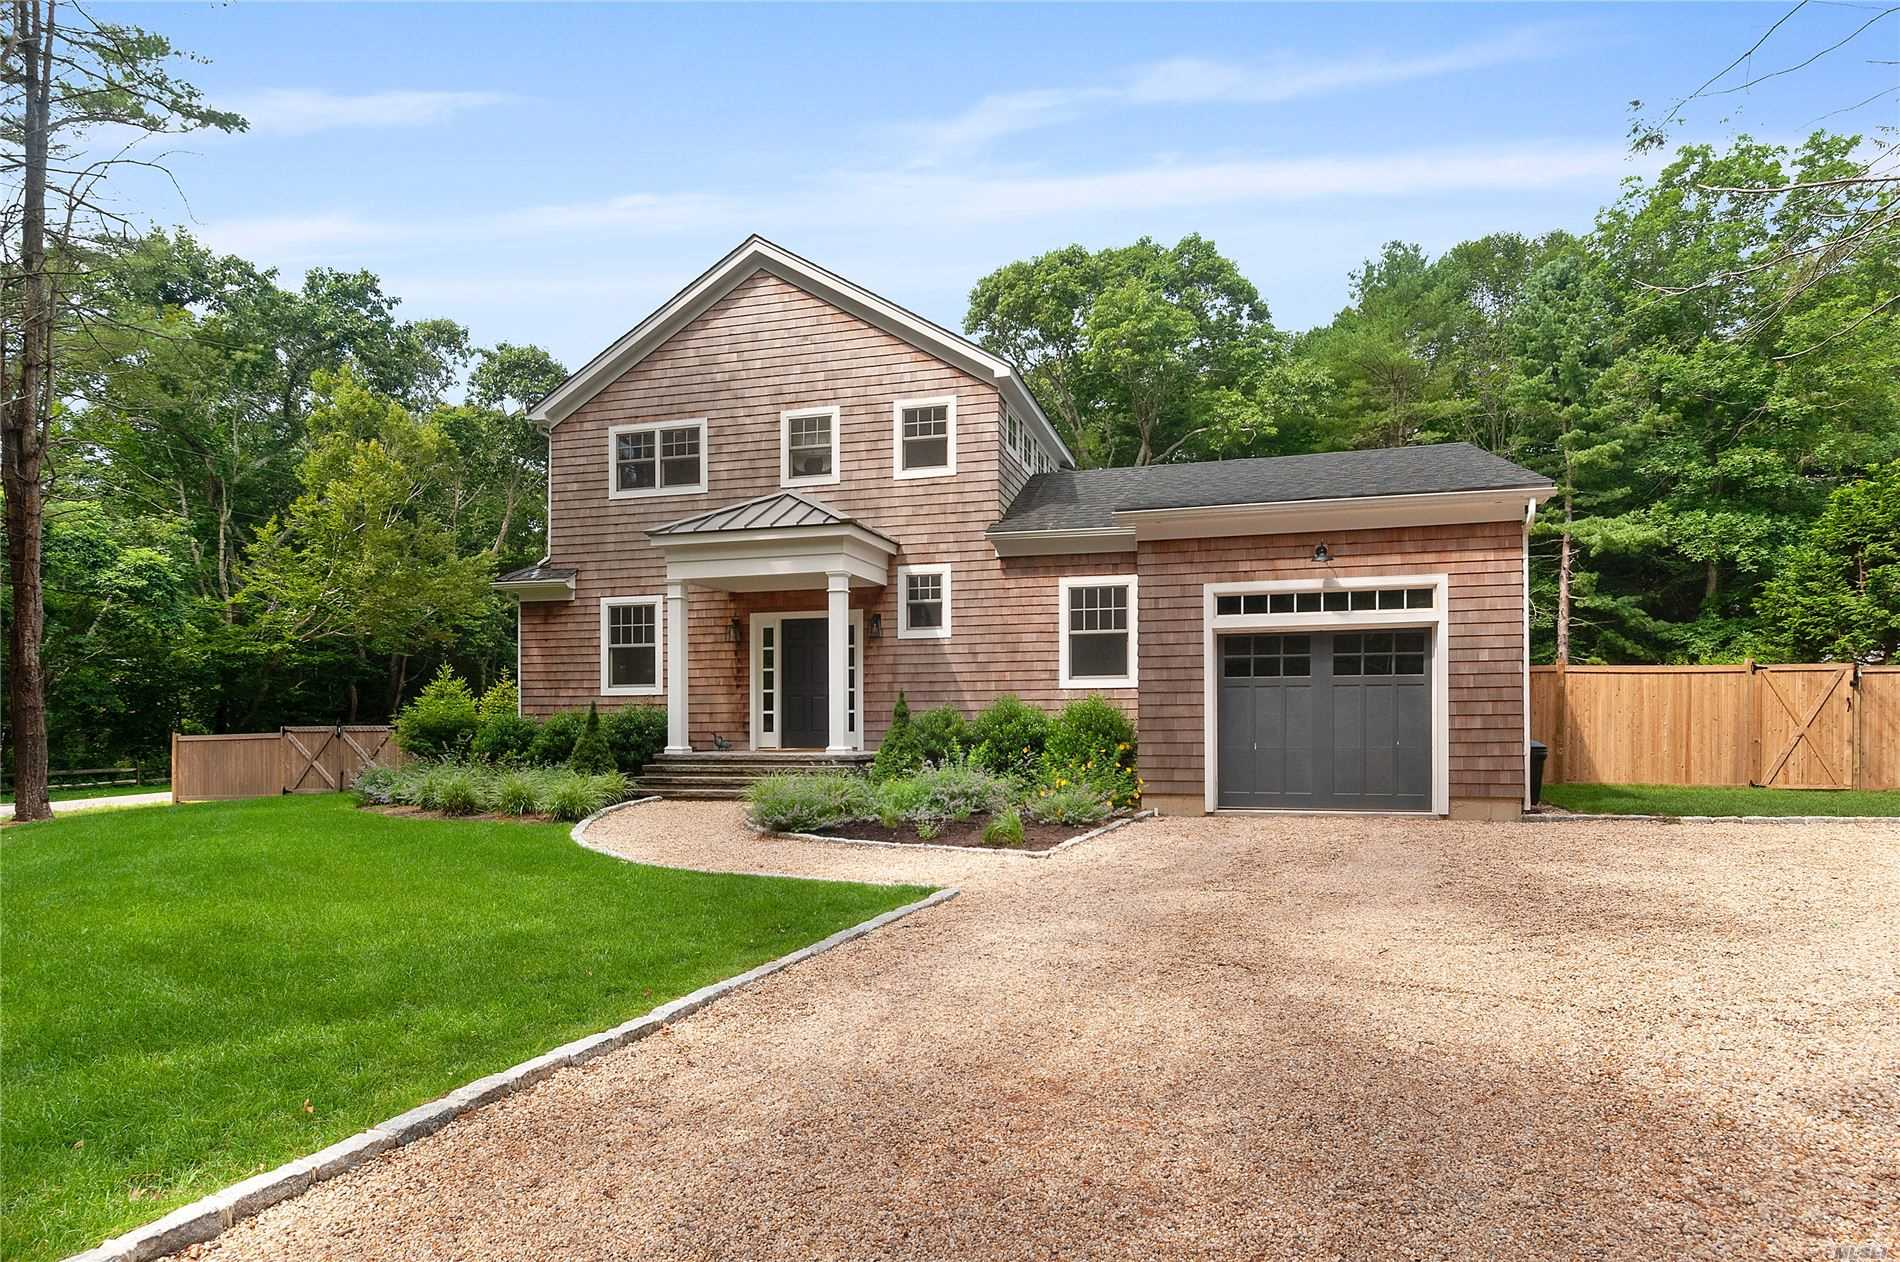 This beautifully designed new construction is just a short distance to the heart of Amagansett. Sitting on a +/-.55 acre lot this two story home has 4 bedrooms and 3.5 bathrooms, full basement, heated pool, first floor master bedroom, den, mud room and attached one car garage. In the entry and throughout the home are wide-plank hard wood floors.